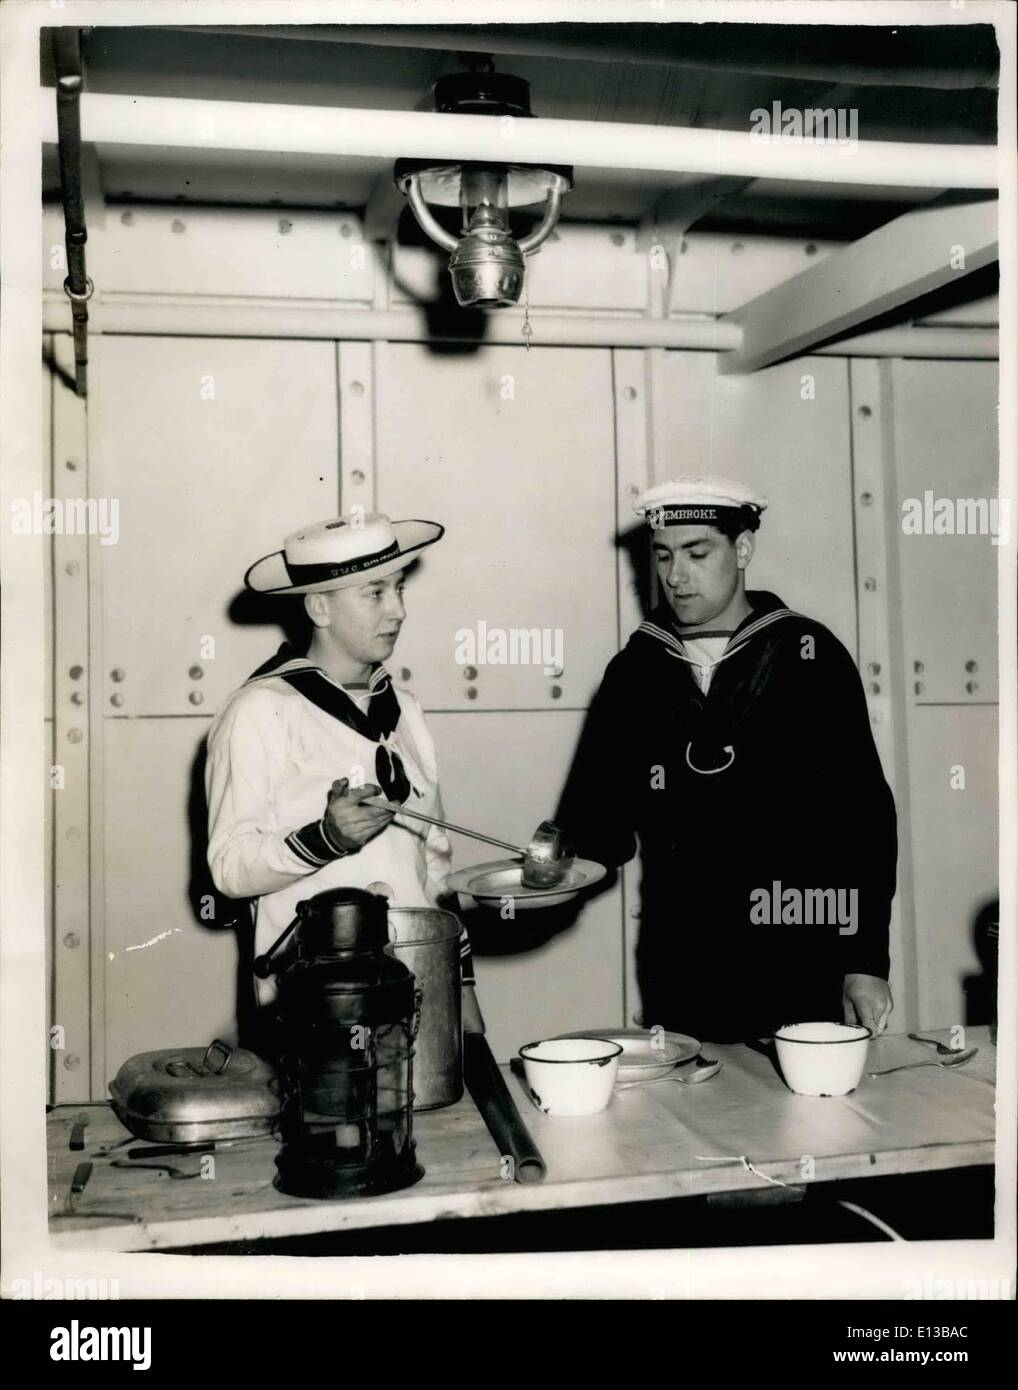 Feb. 29, 2012 - Preparations are going ahead at Chatham for the Easter Navy Days - which incorporates celebrations of the fiftieth anniversary of the Royal Naval Barracks. Keystone Photo Shows - Dressed in the gear of ffifty years ago - Left 'Boy' John Willsher of Morden serves food to Stoker Sidney Goodall of the Waltham Abbey - during preparations at Chathan for Easter Navy Days, - Stock Image